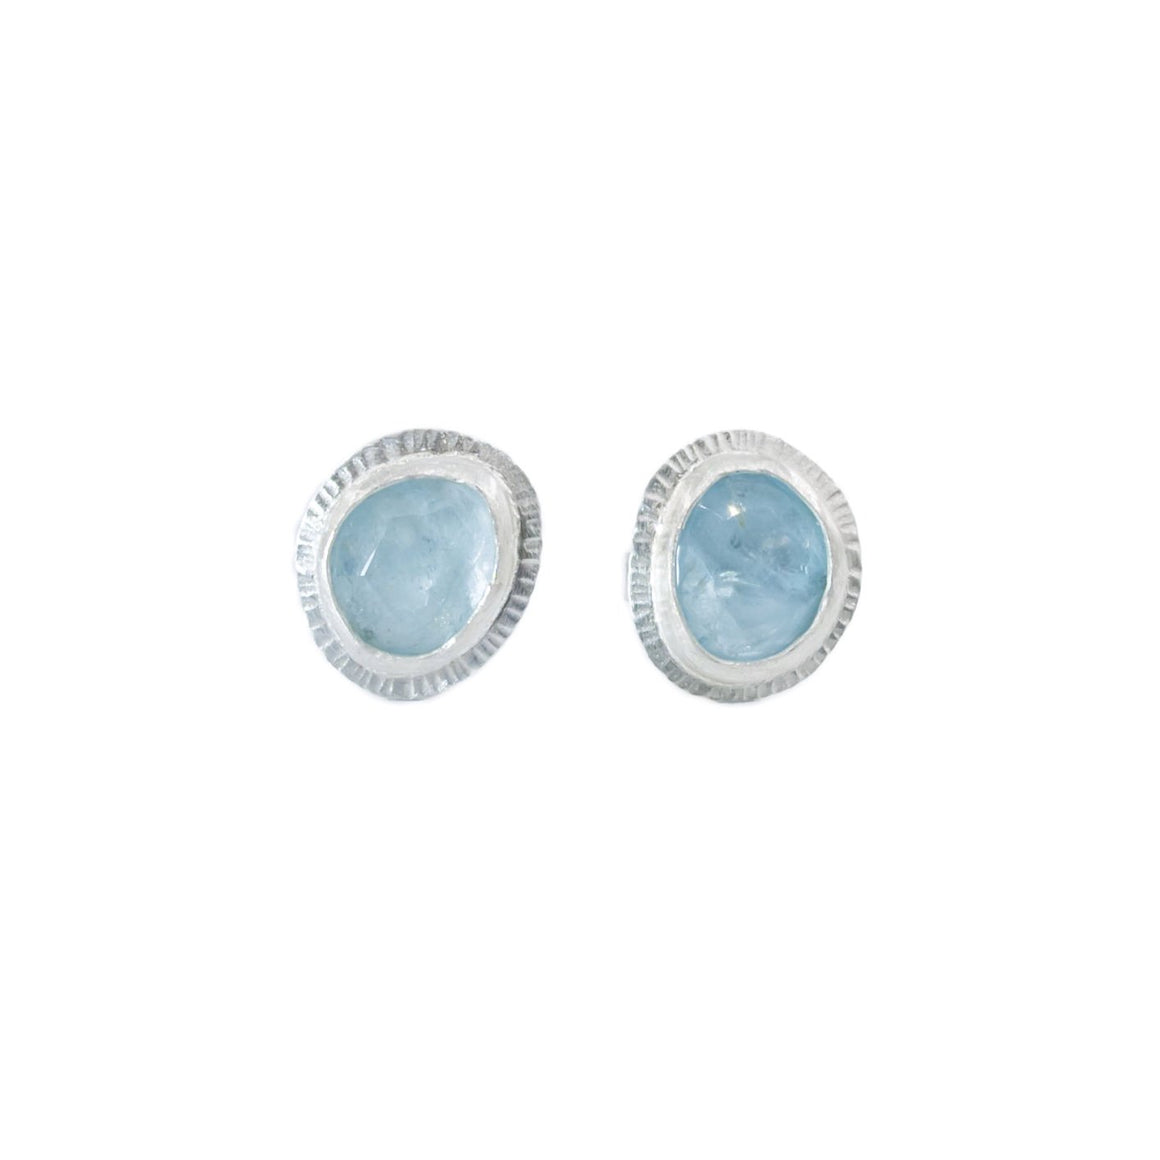 Small Aquamarine Stud Earrings by Original Sin Jewelry